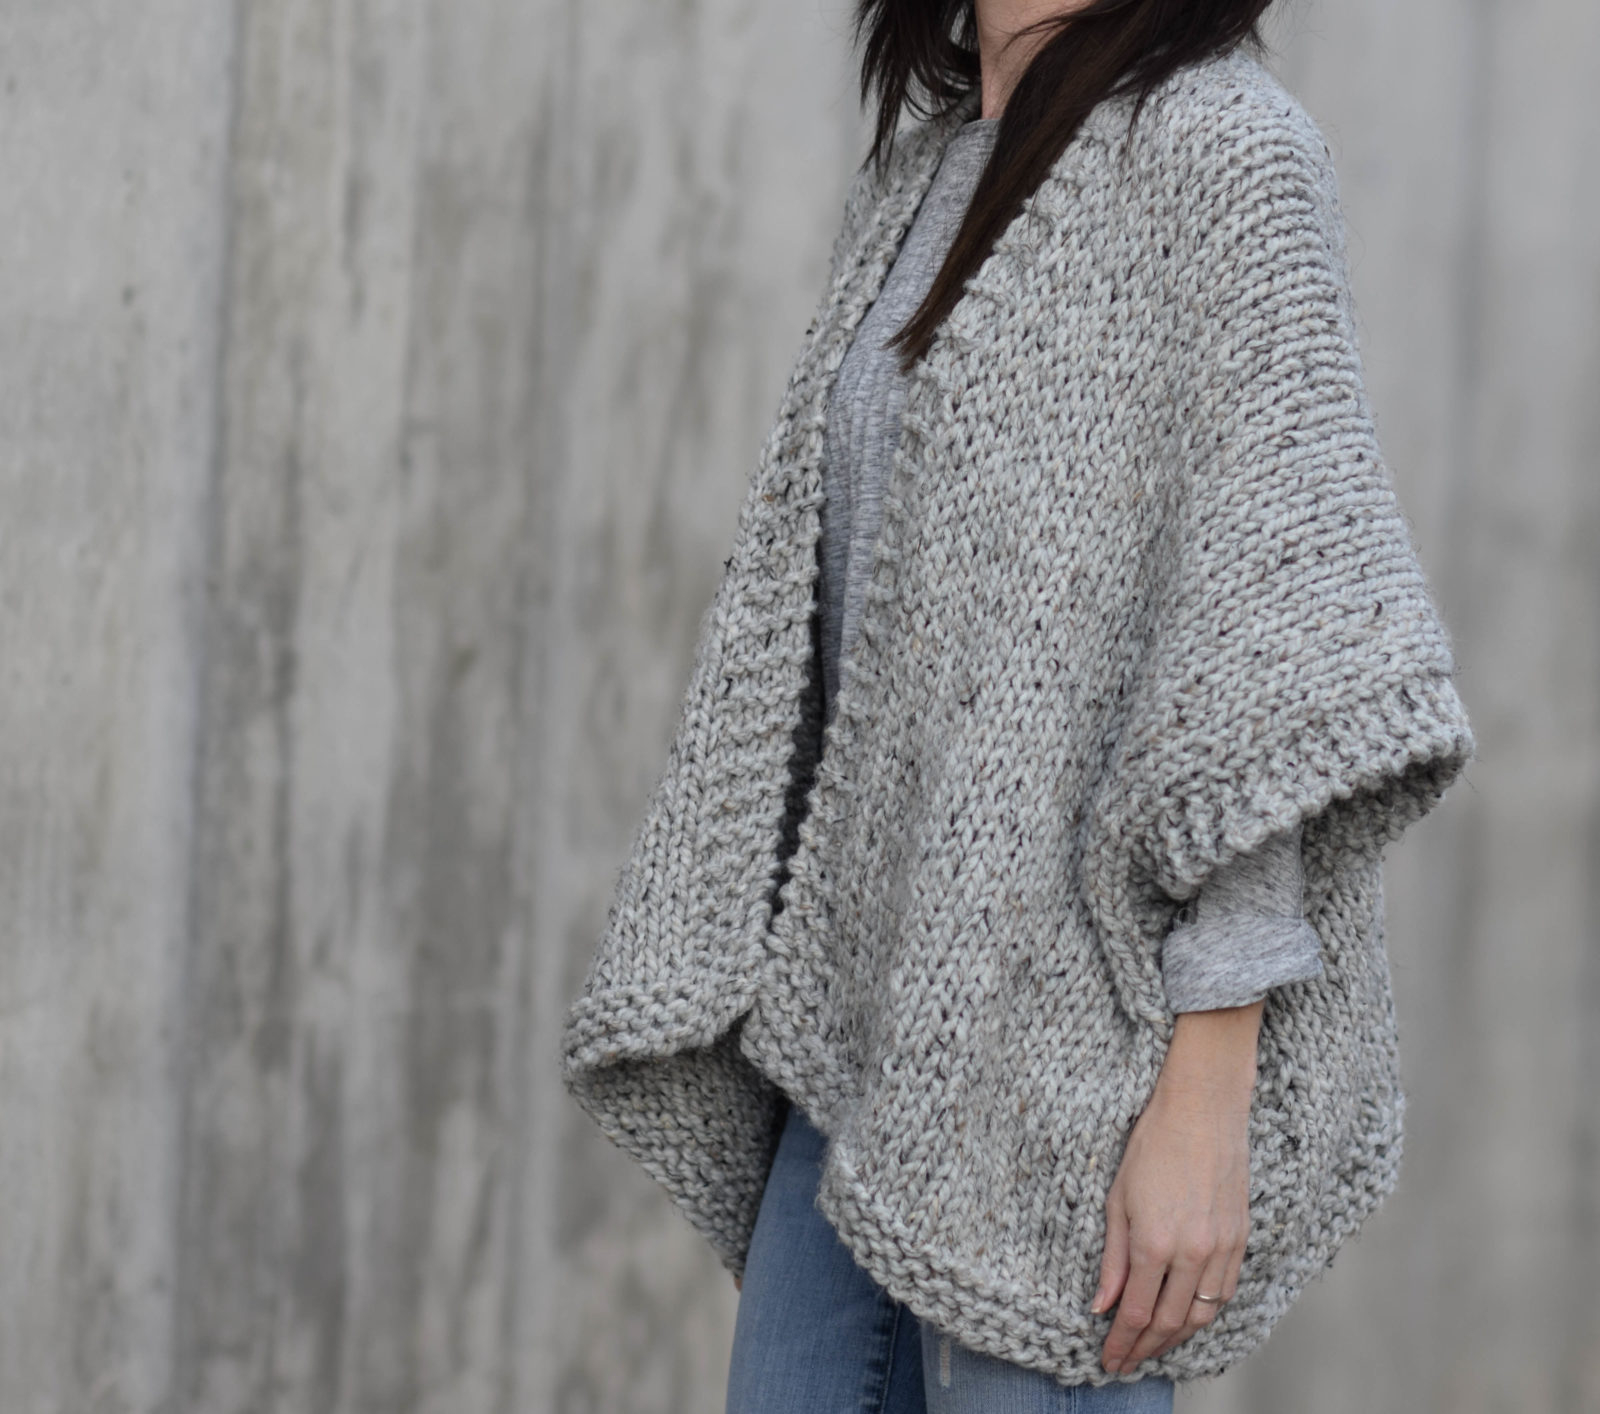 Simple Knit Sweater Pattern Free Telluride Easy Knit Kimono Pattern Mama In A Stitch